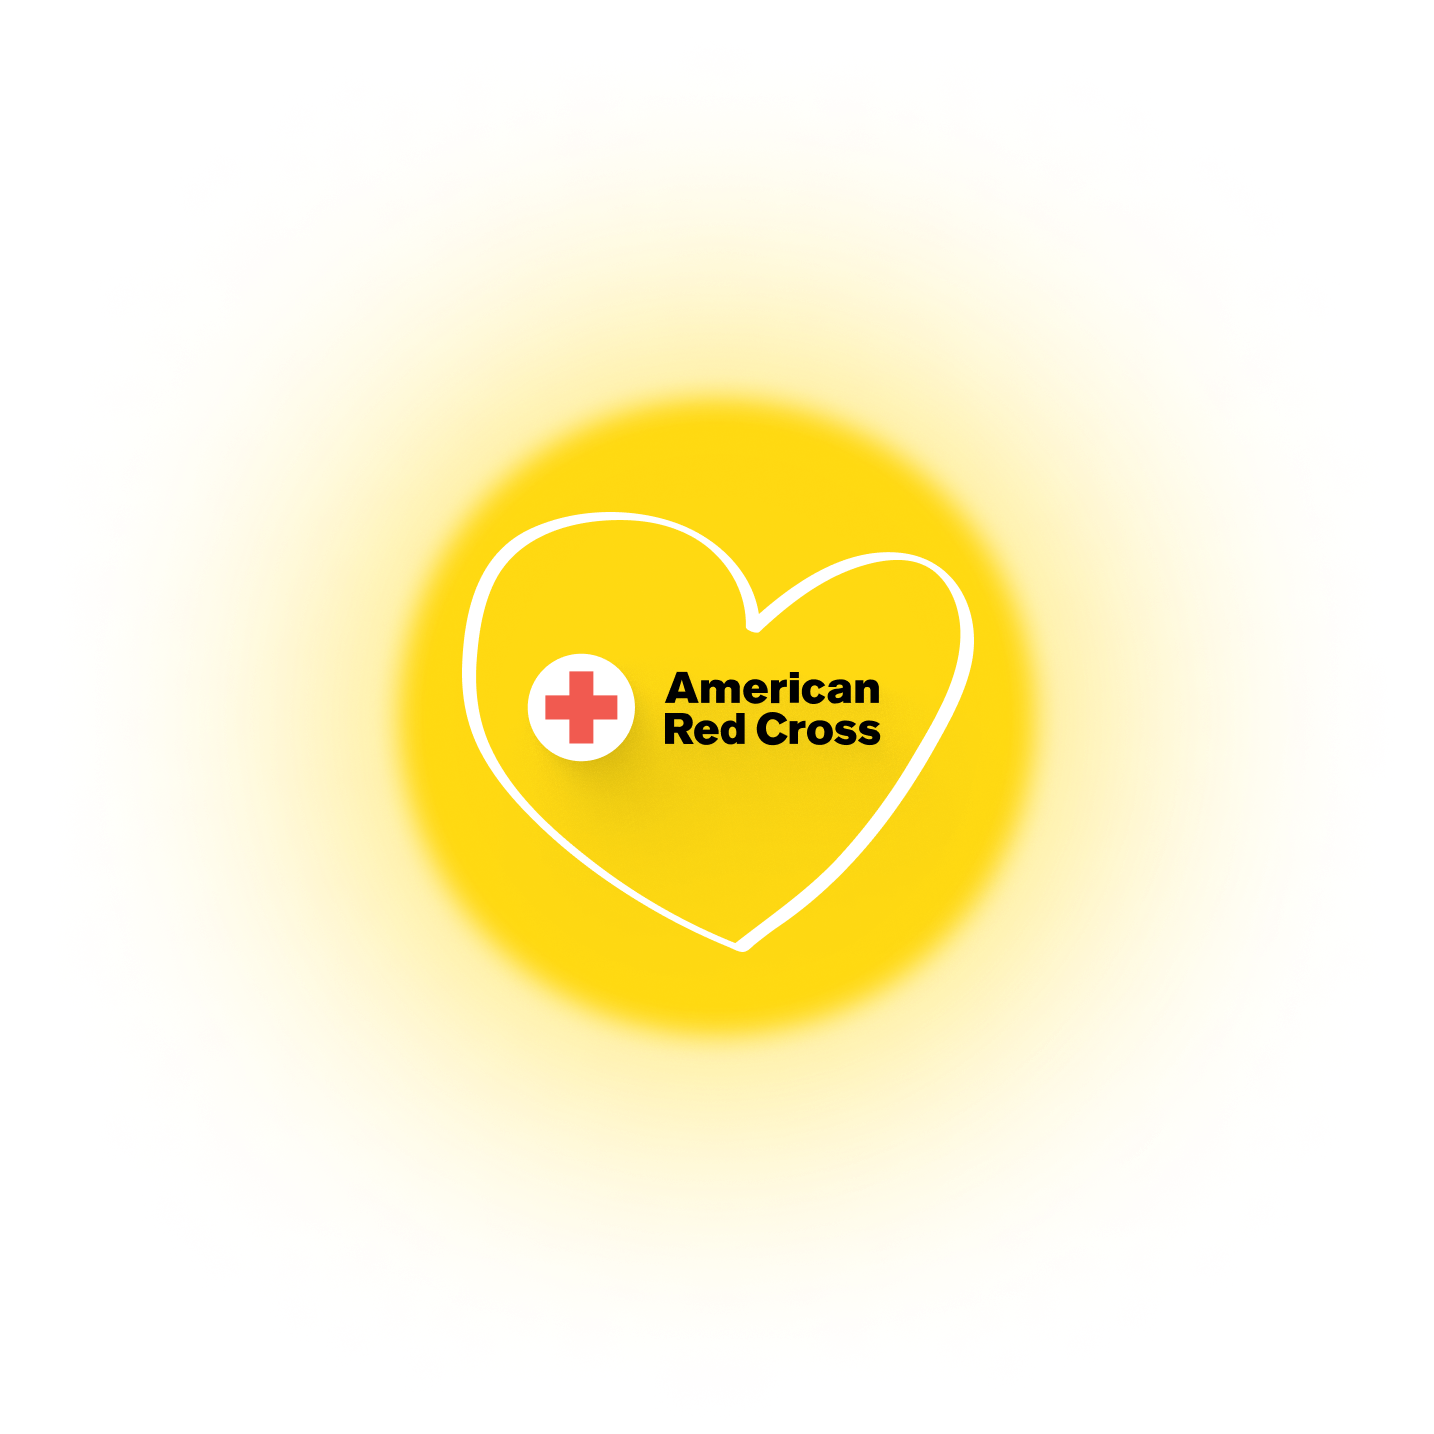 Heart and charity logo